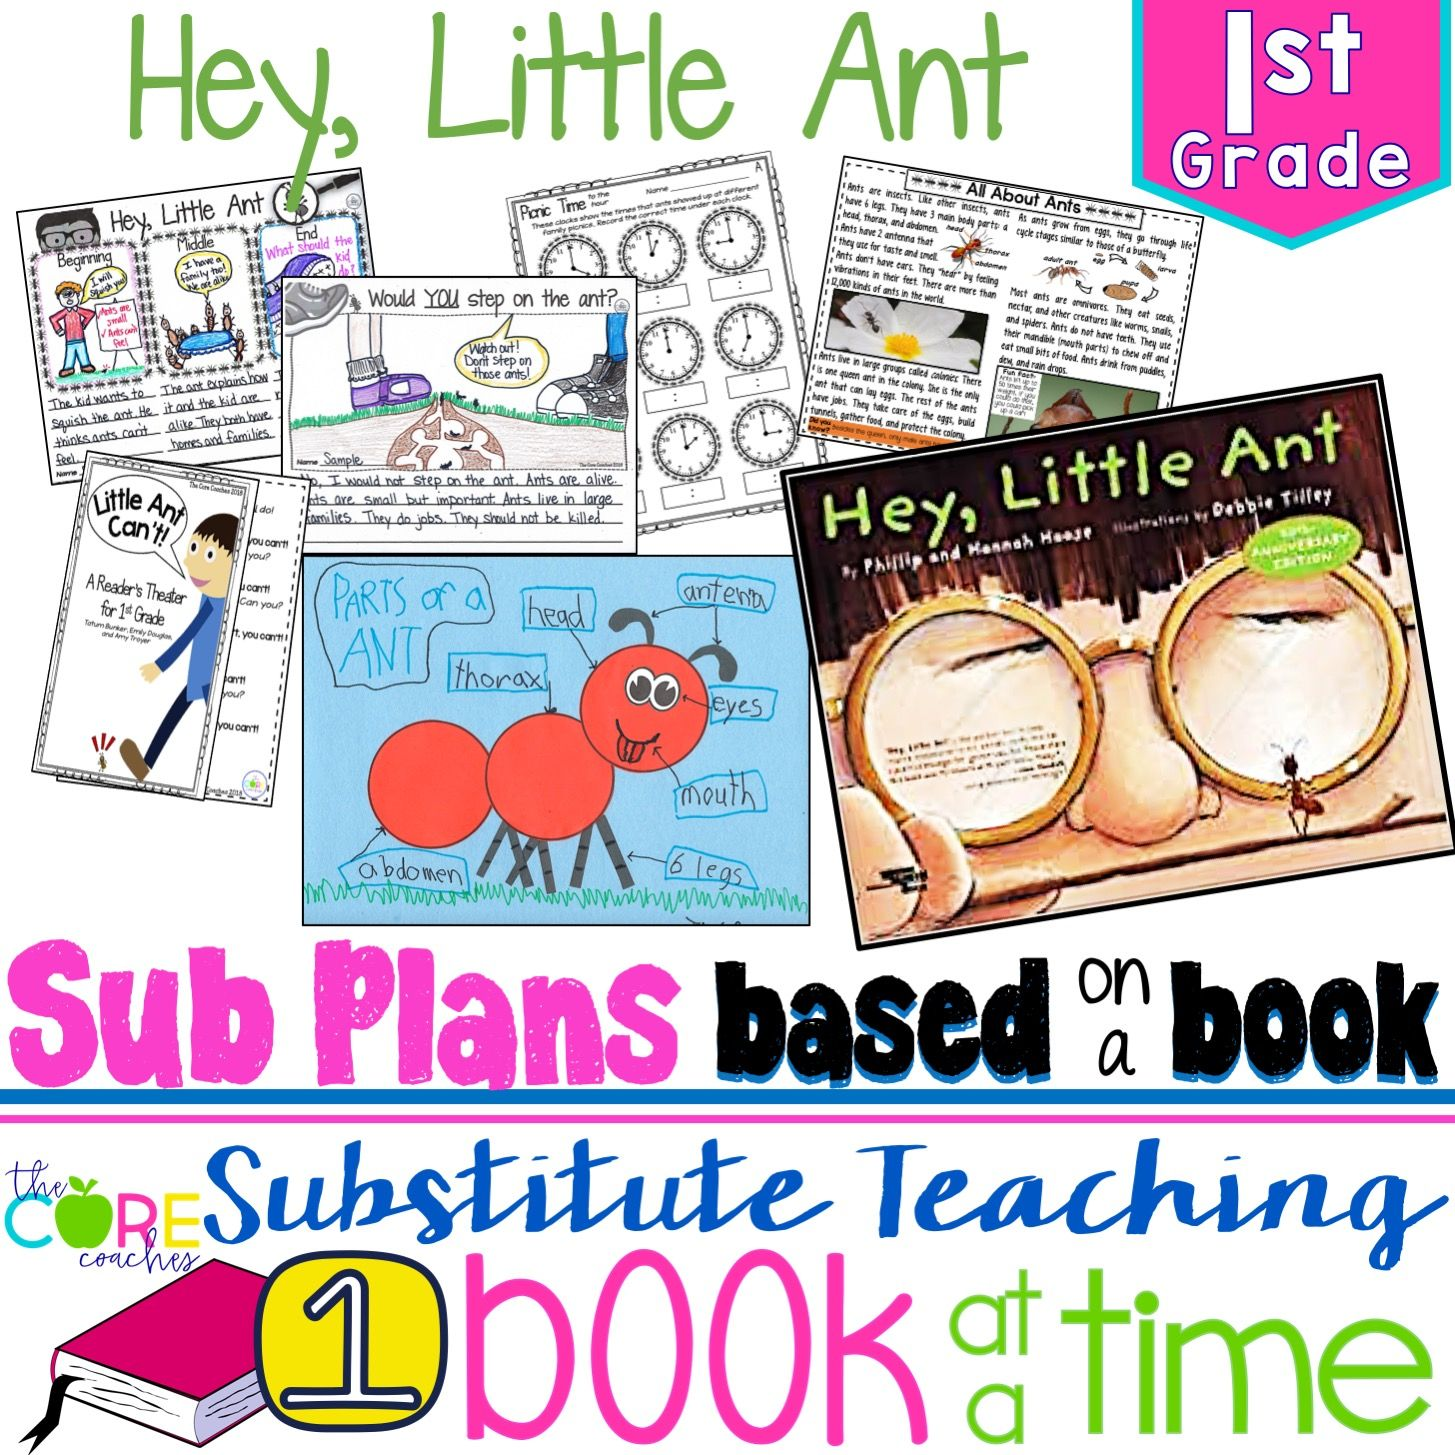 Teach ELA, math, science, social studies, P.E., art and more with these full-day sub plans!